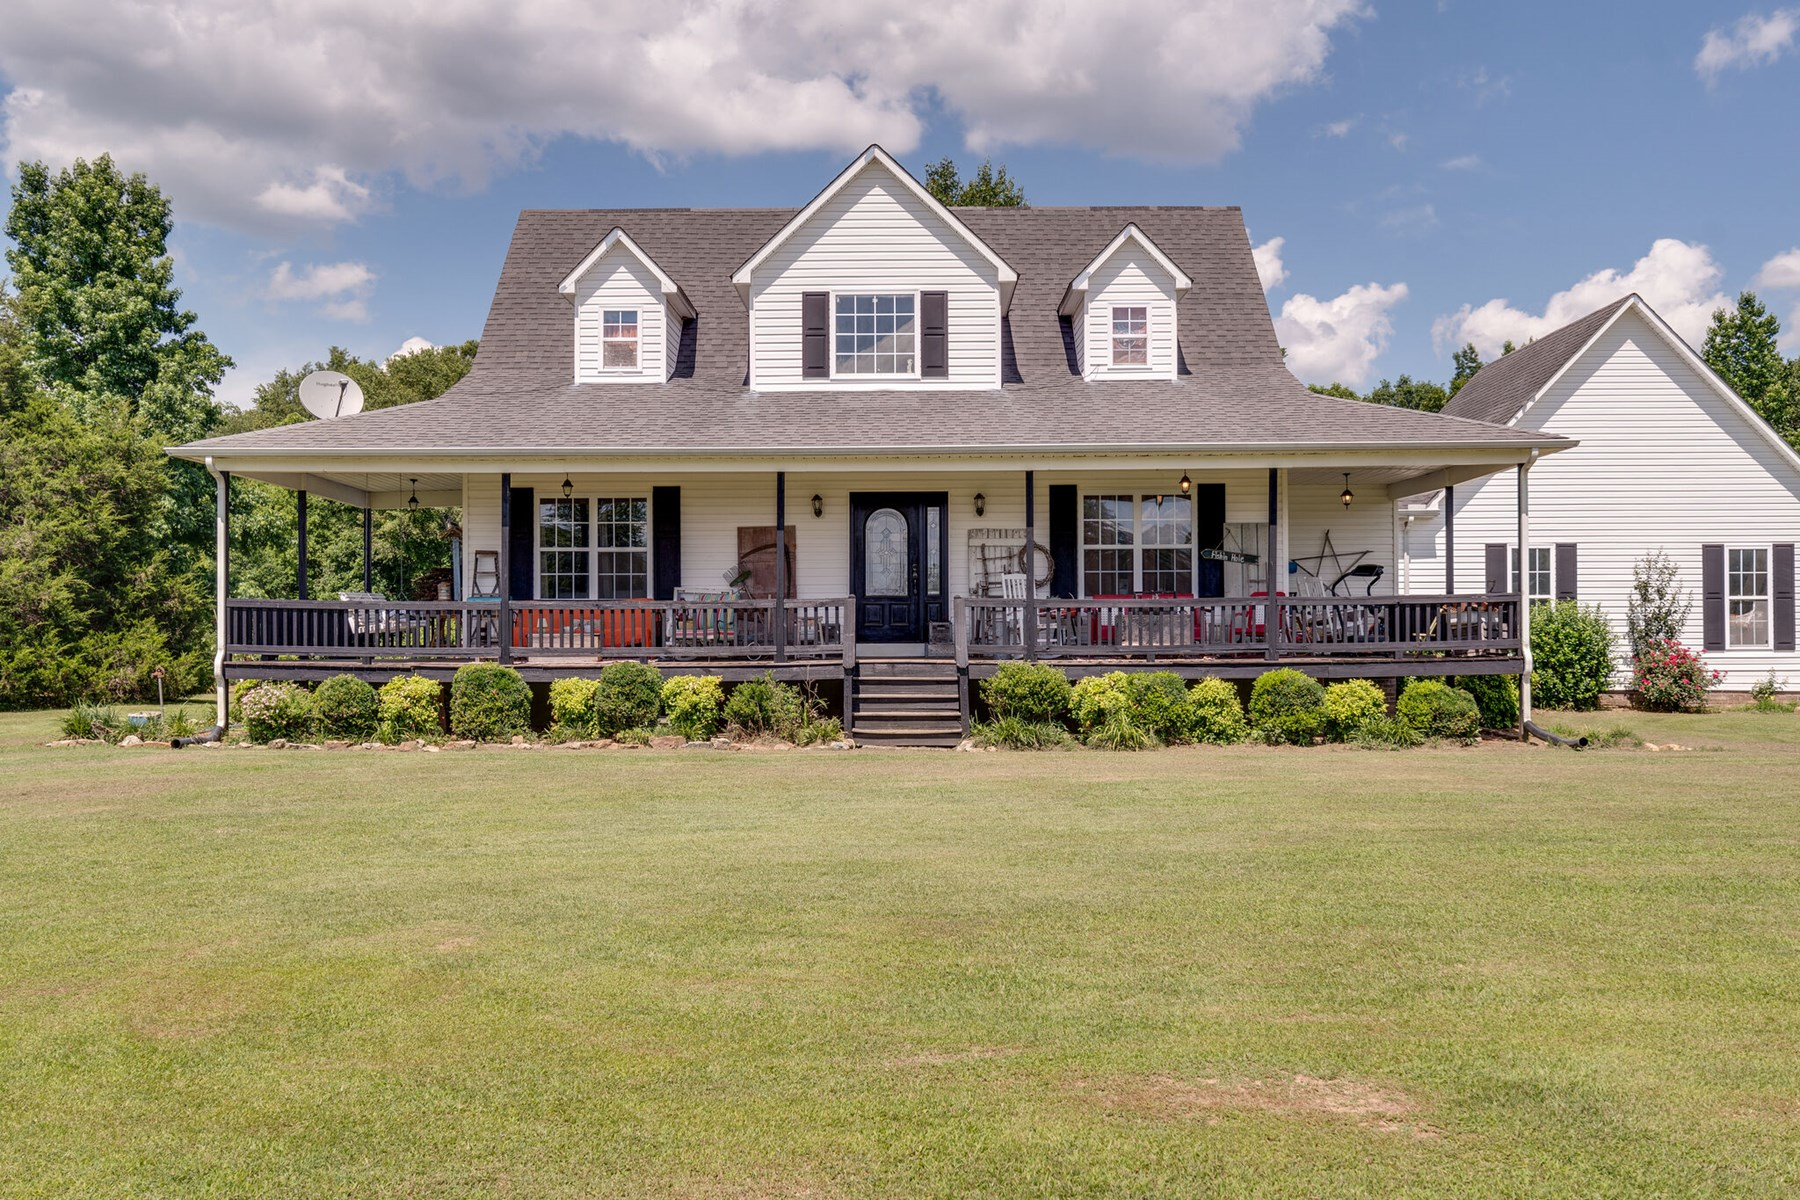 Middle Tennessee Country Home with Acreage for Sale